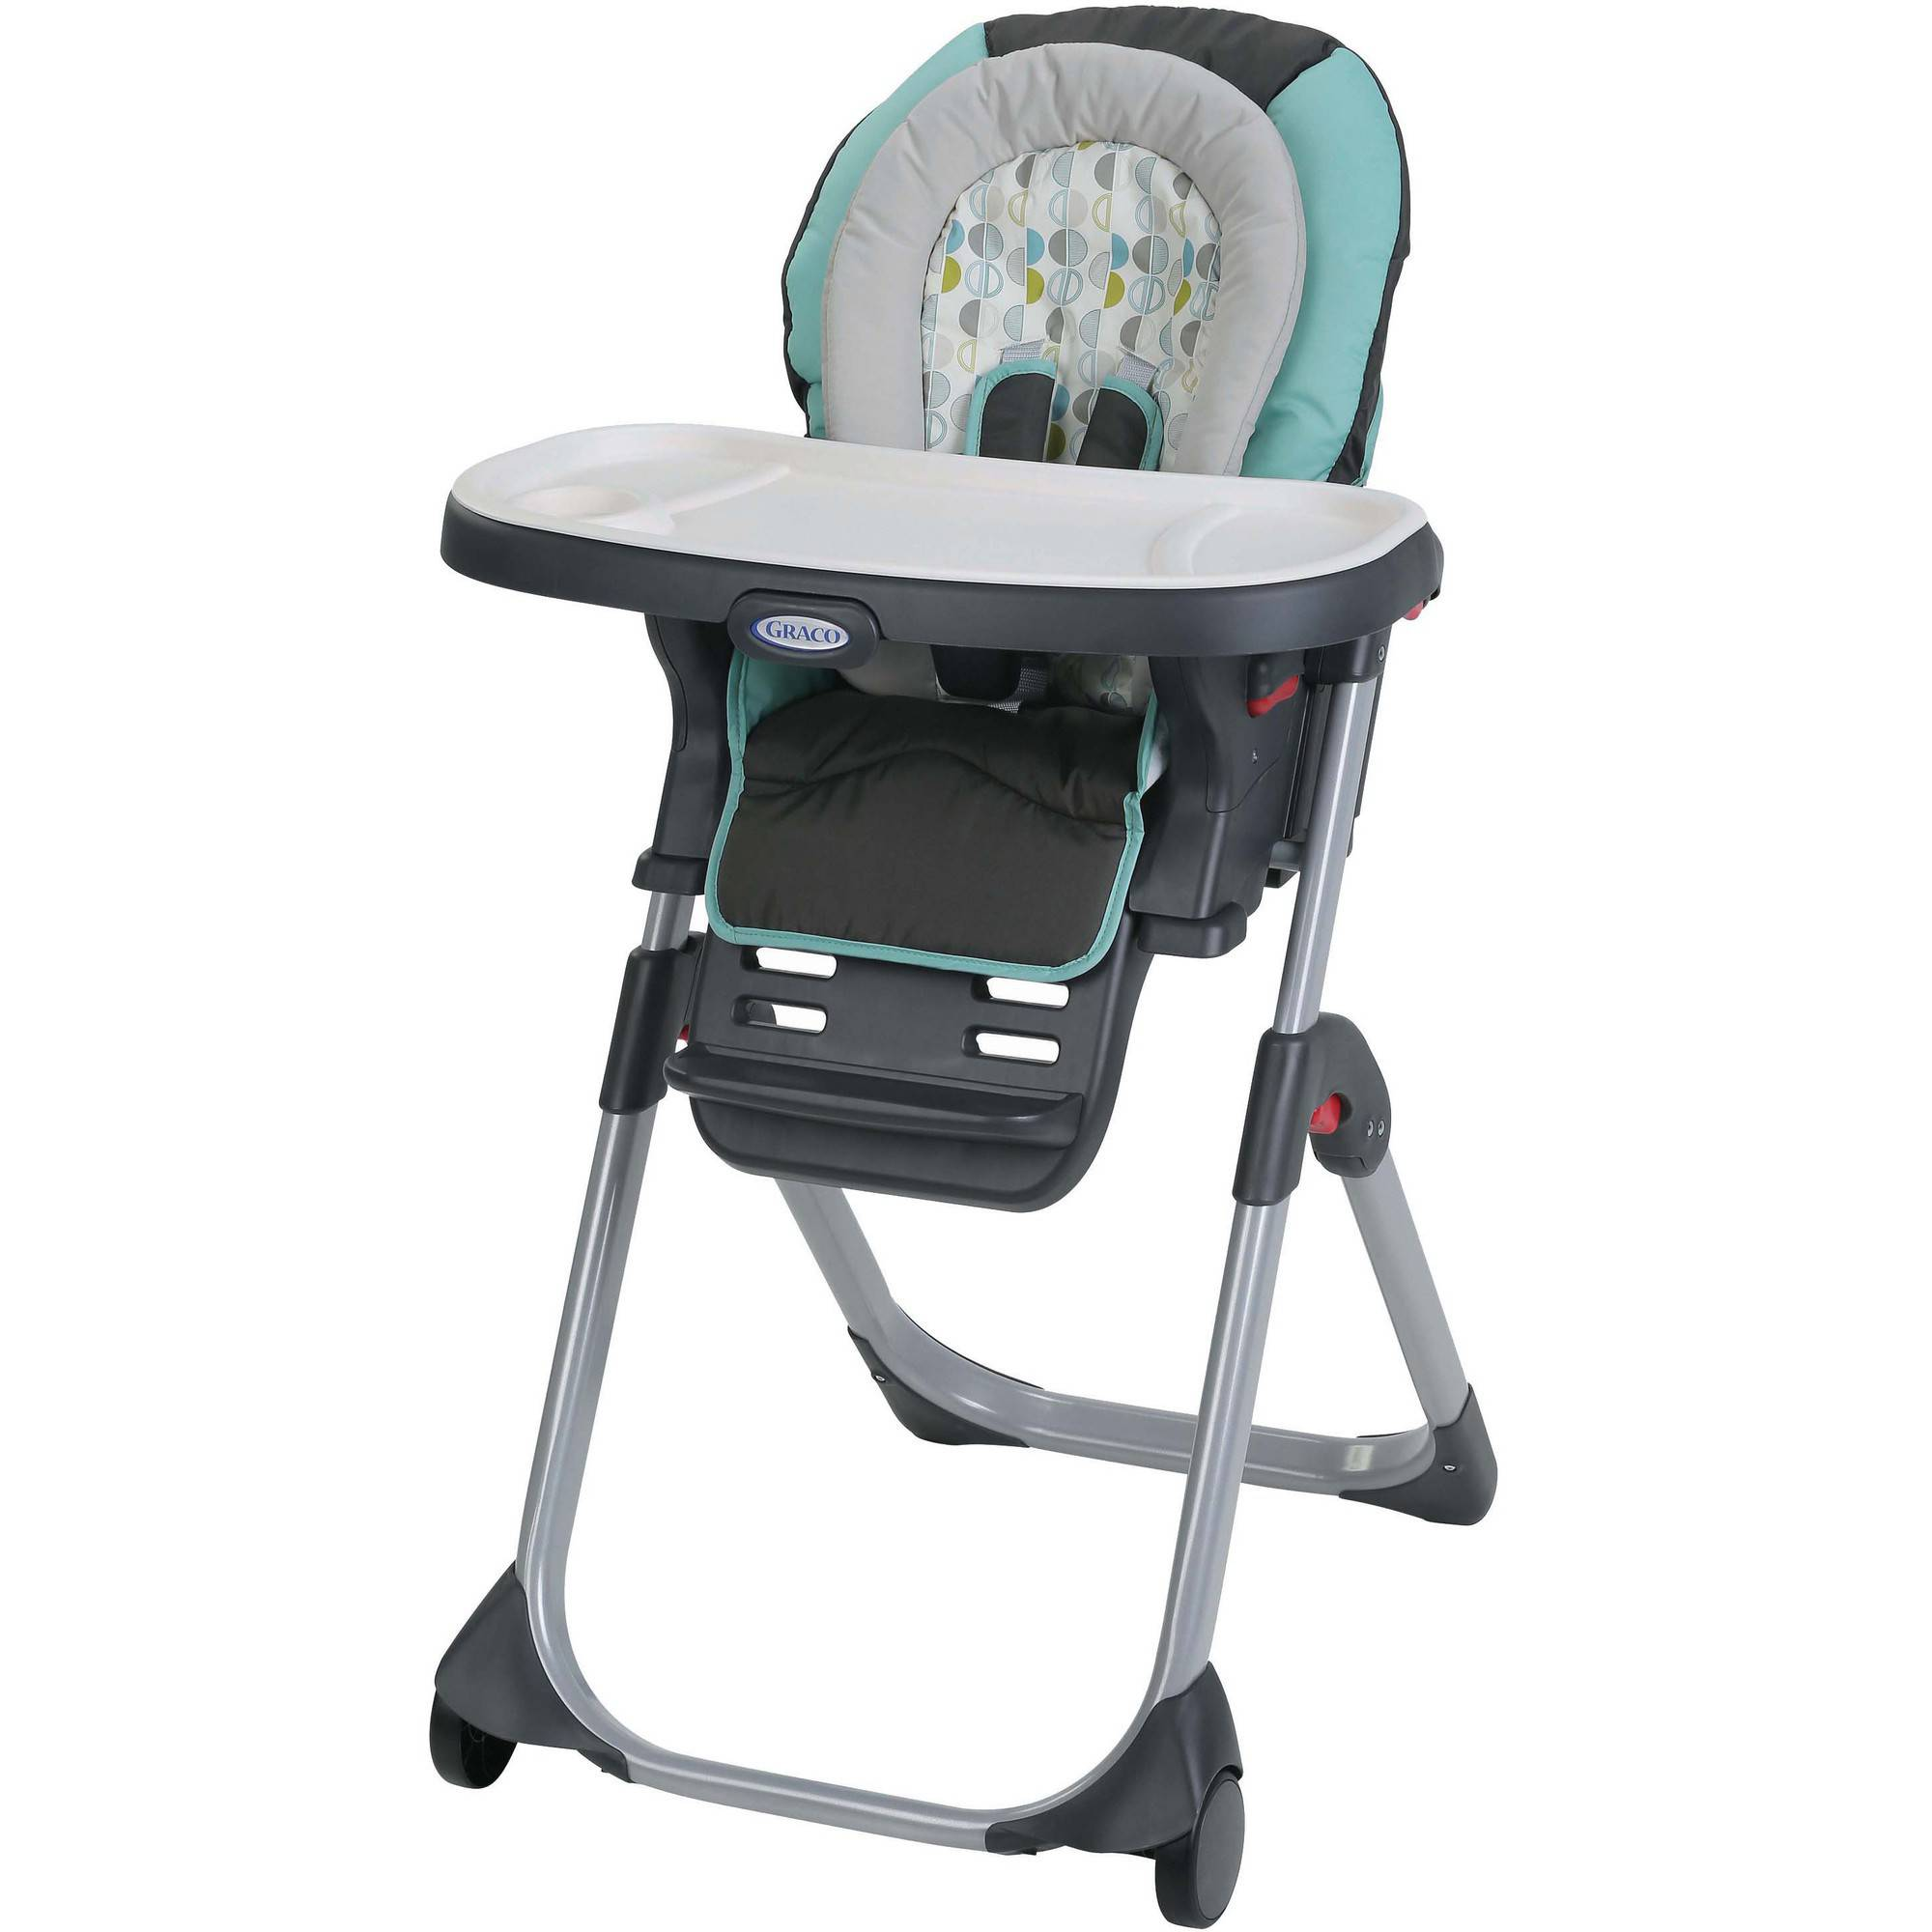 Chair High Chair Graco Duodiner 3 In 1 Convertible High Chair Groove